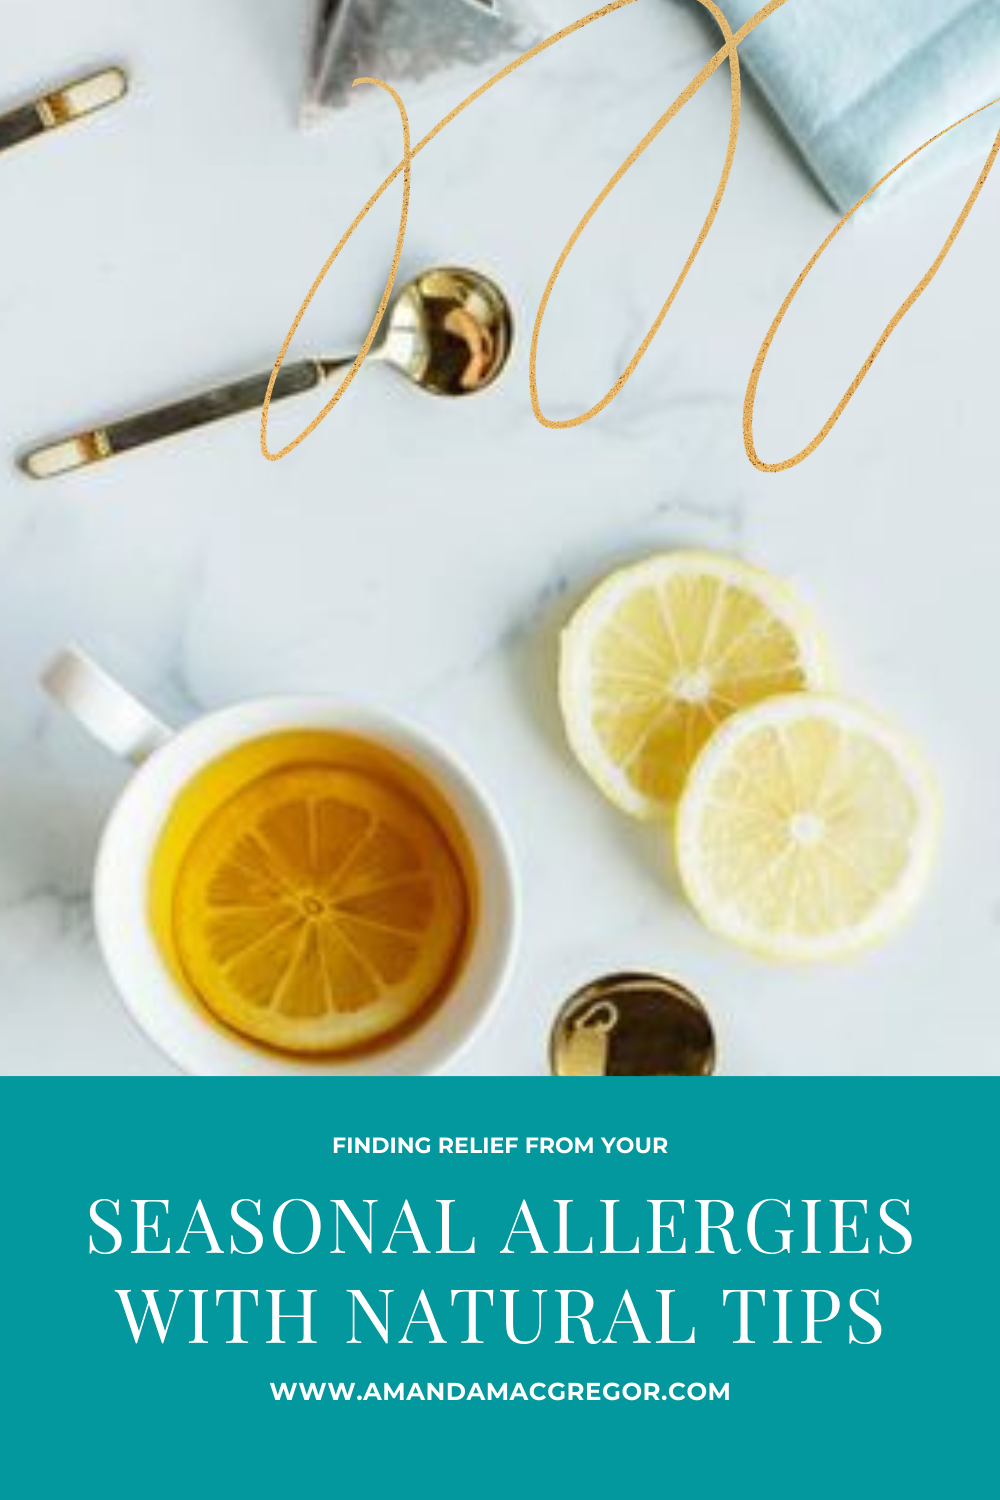 Finding Relief From Your Seasonal Allergies with Natural Tips - amanda macgregor - food allergies